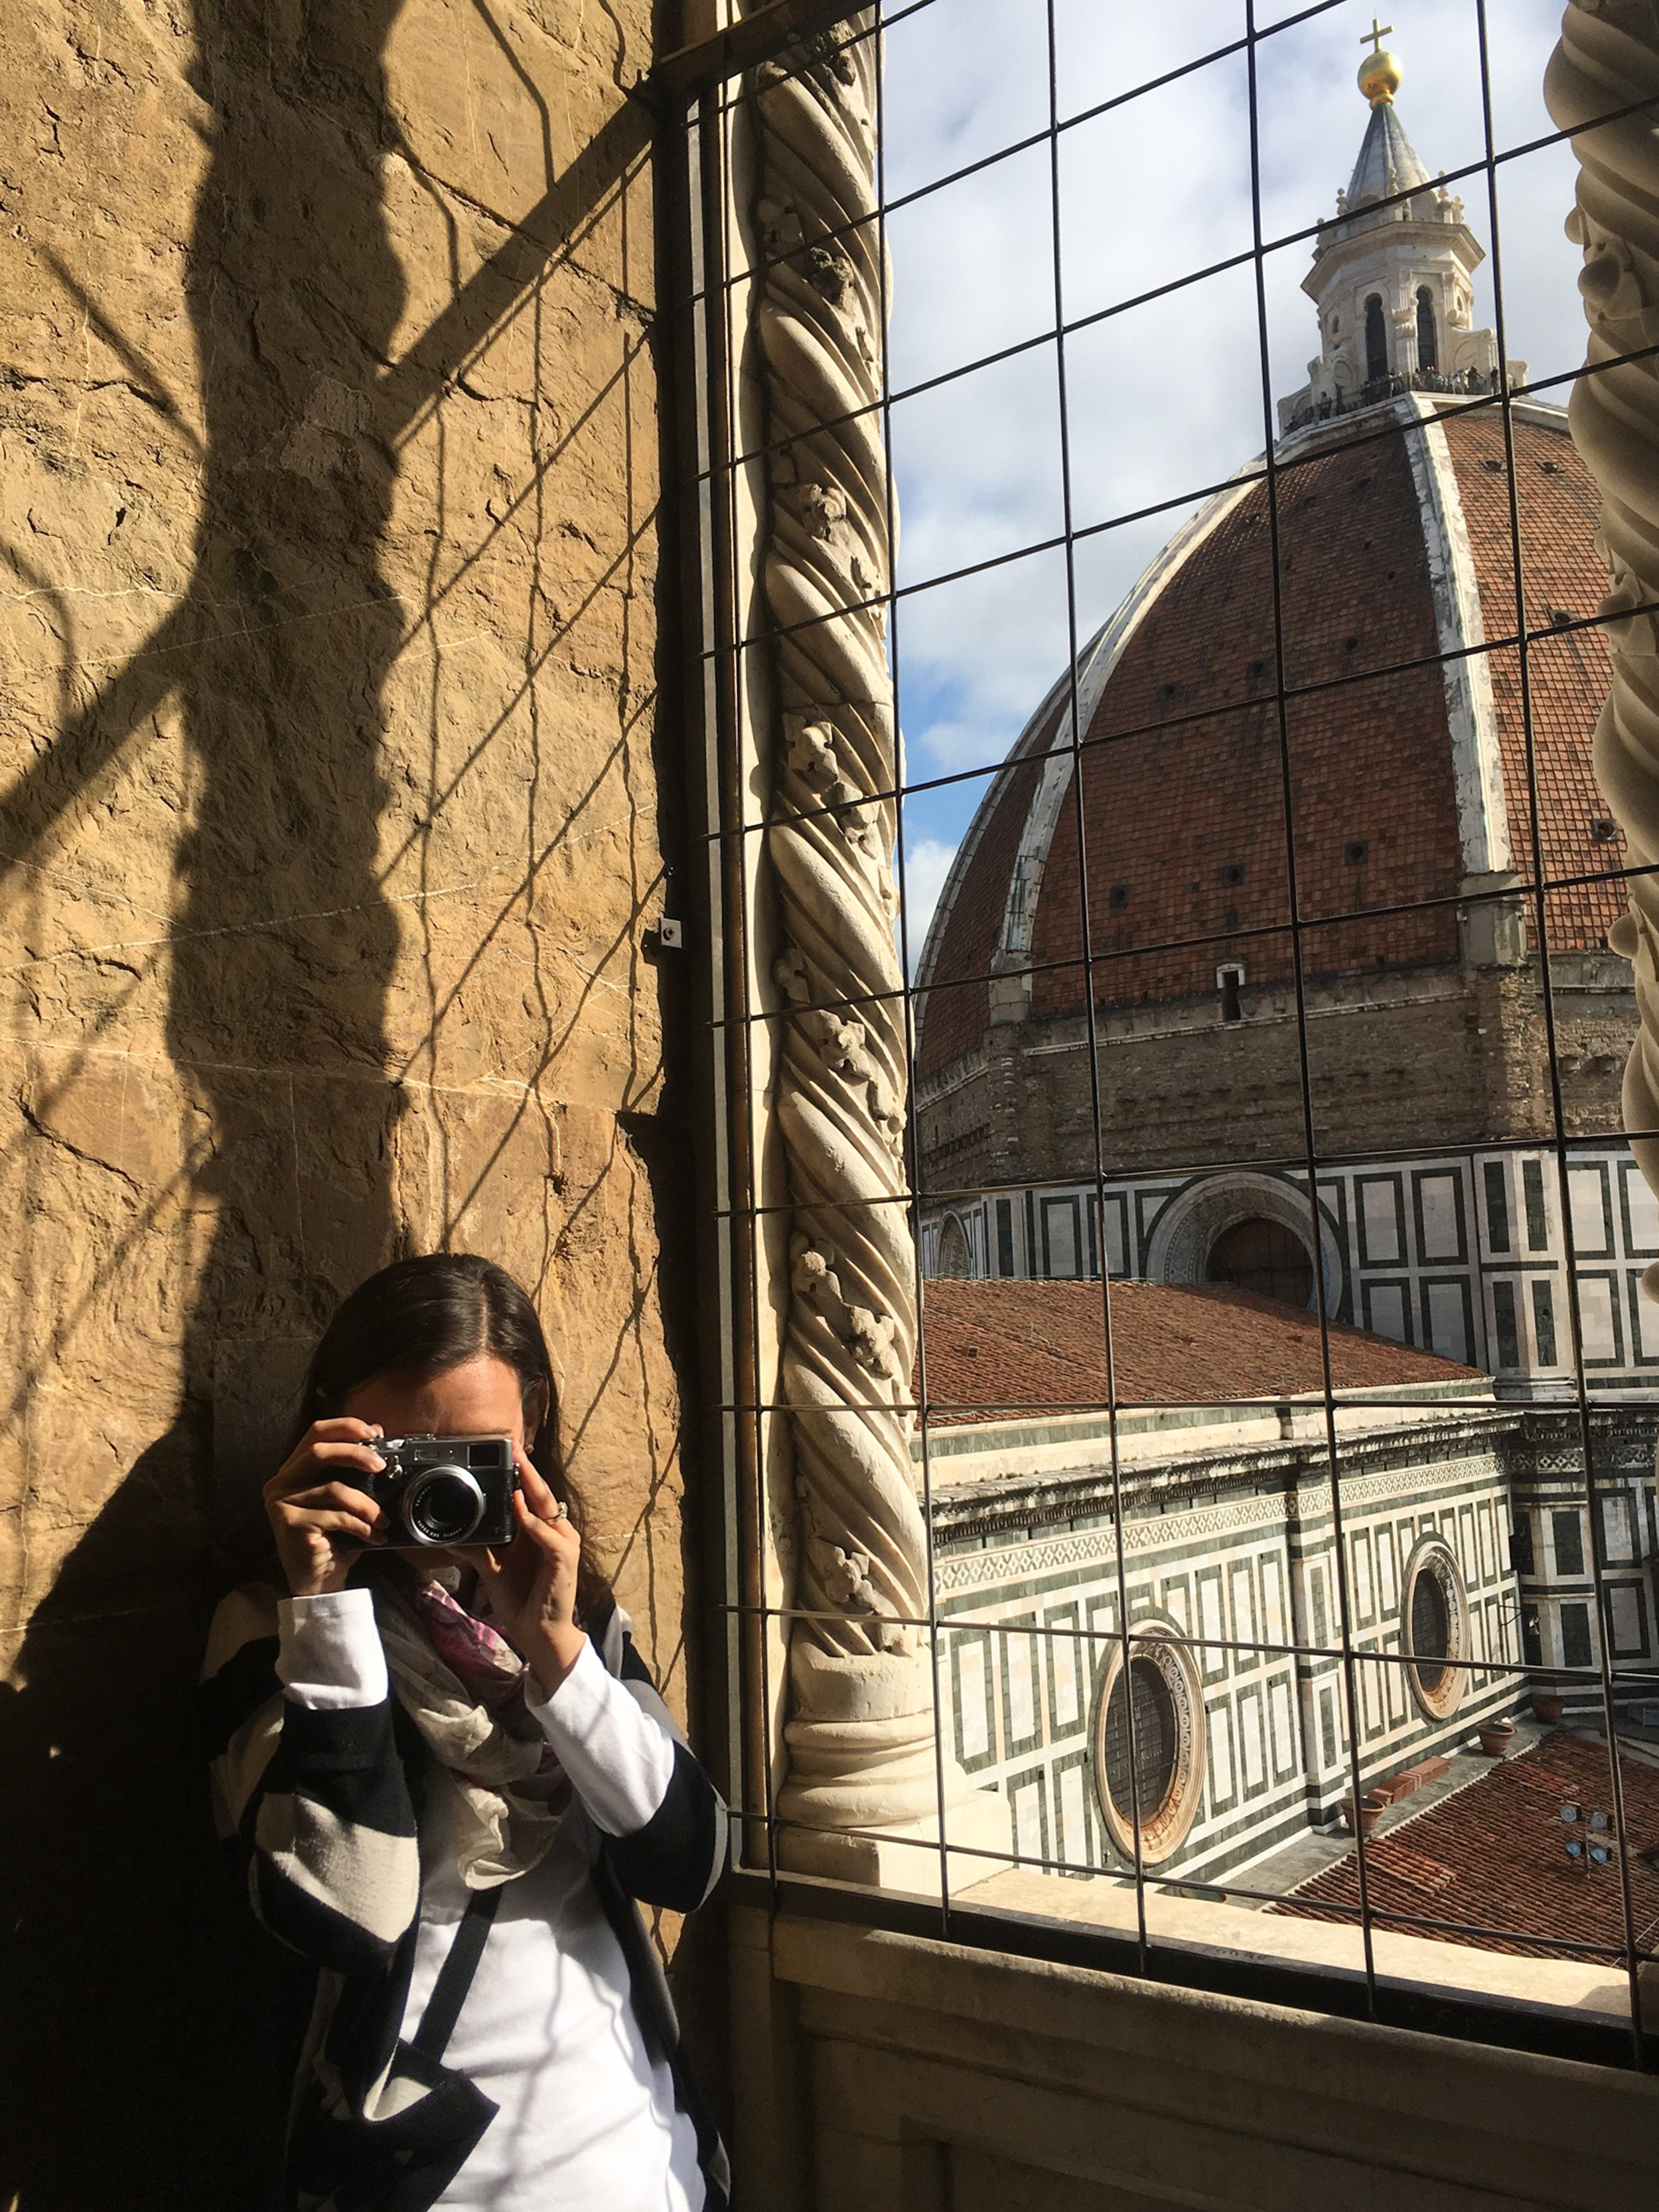 Rache Photographer l in Florence, Italy